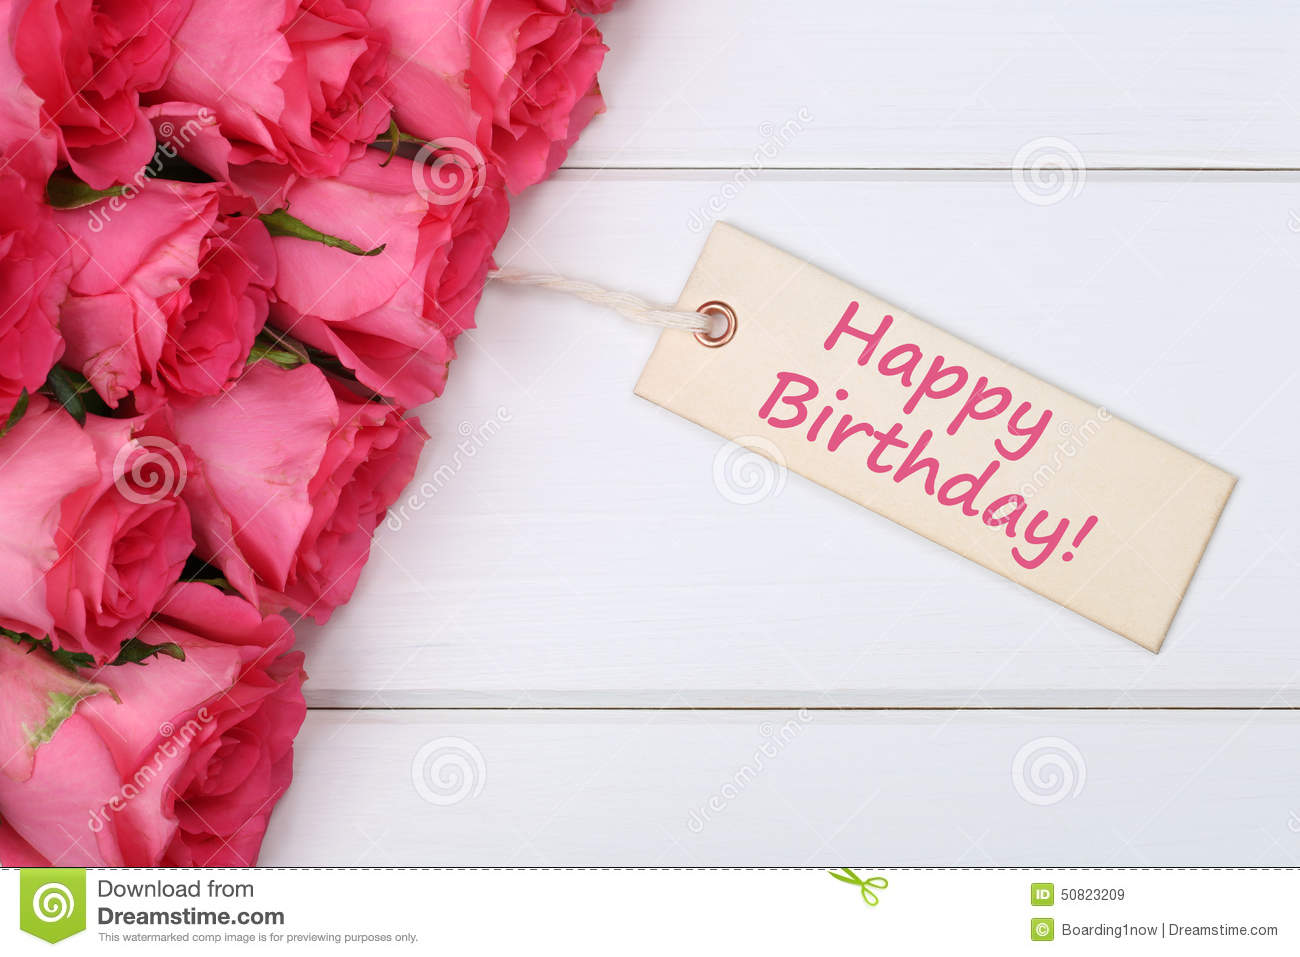 Carte Cadeau Wish Happy Birthday With Roses Flowers With Greeting Card On A